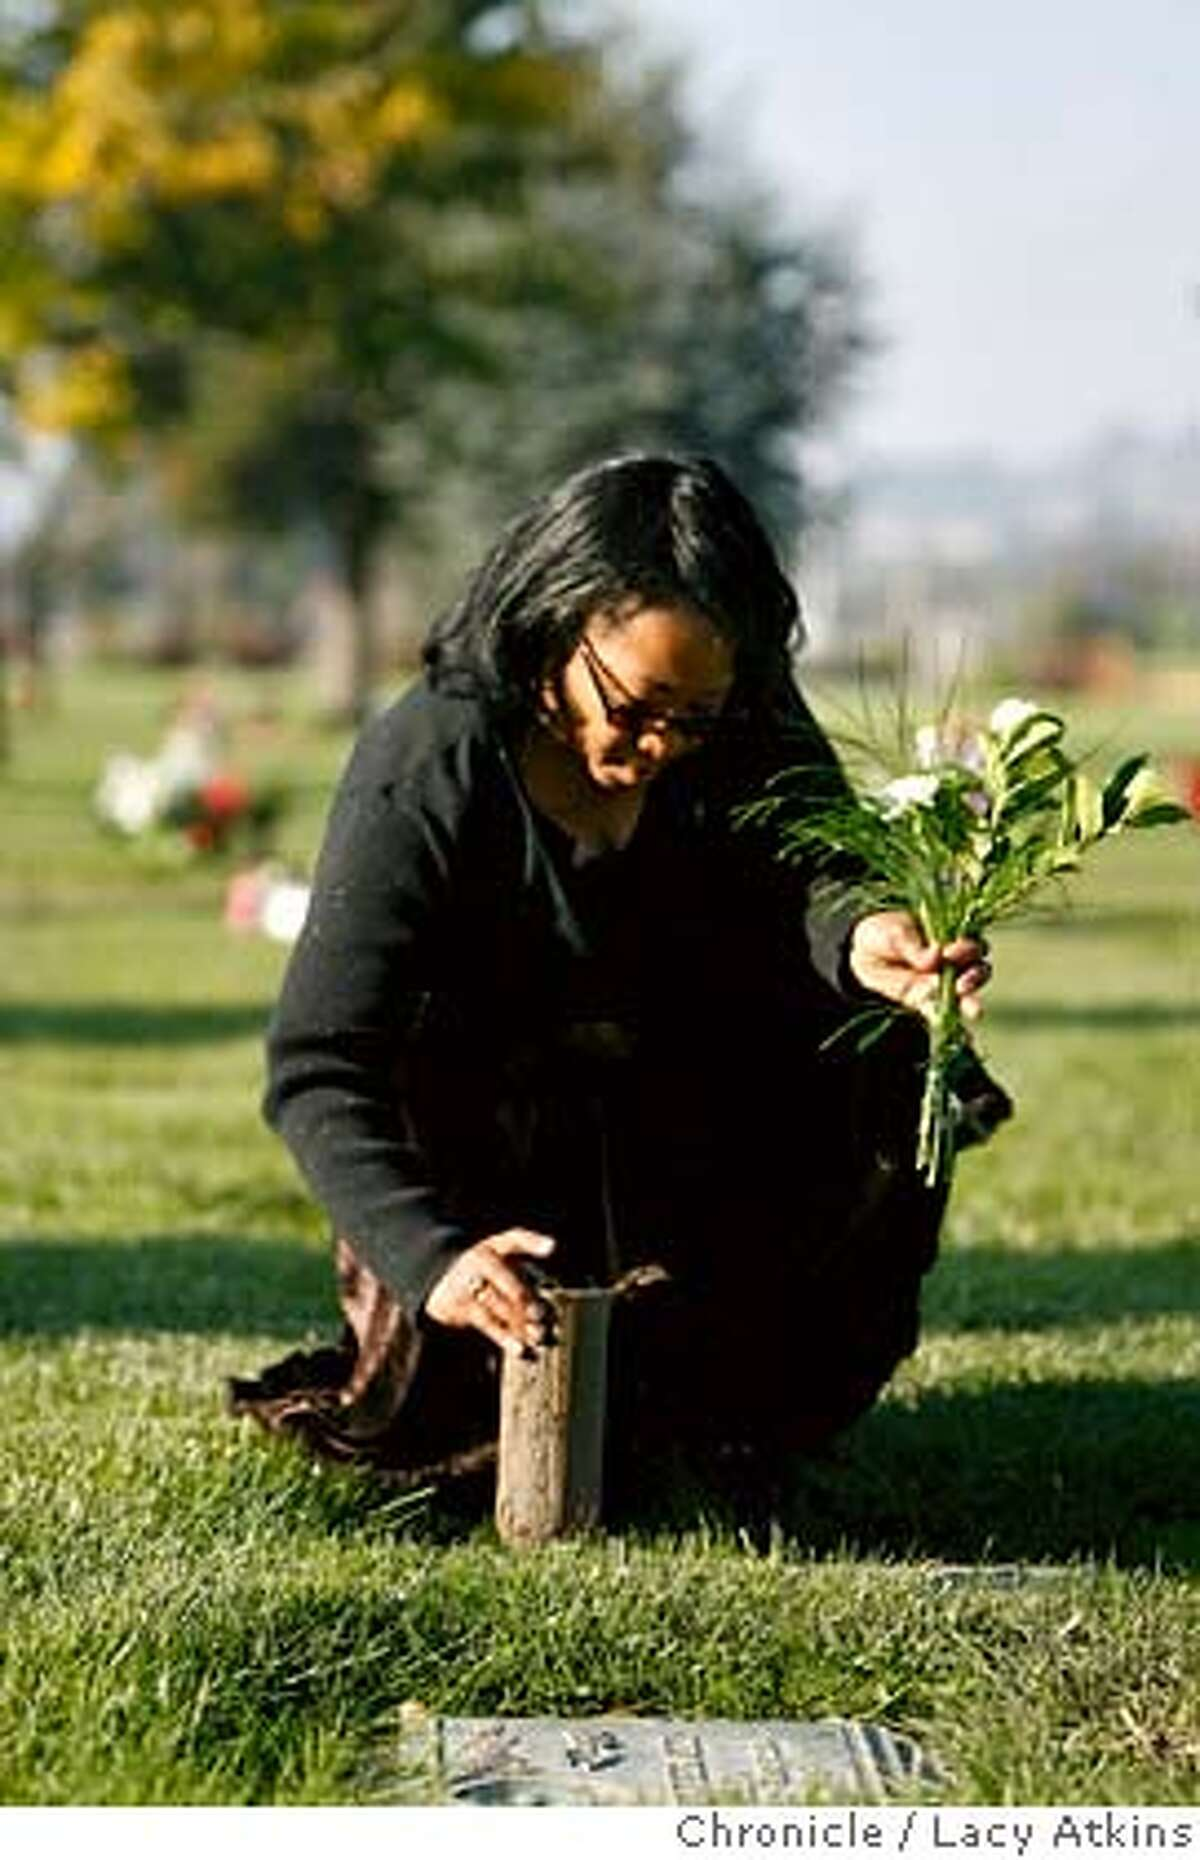 Lorrain Taylor visits her sons grave at the Chapel of the Chimes Memorial Park, Sunday Dec. 3, 2006, in Hayward, Ca. Because they are buried here, she remains in the bay area rather than near her other living son, Gregory, in Houston. Her twin sons Albade and Obadiah were killed in February of 2000. (Lacy Atkins / The Chronicle)